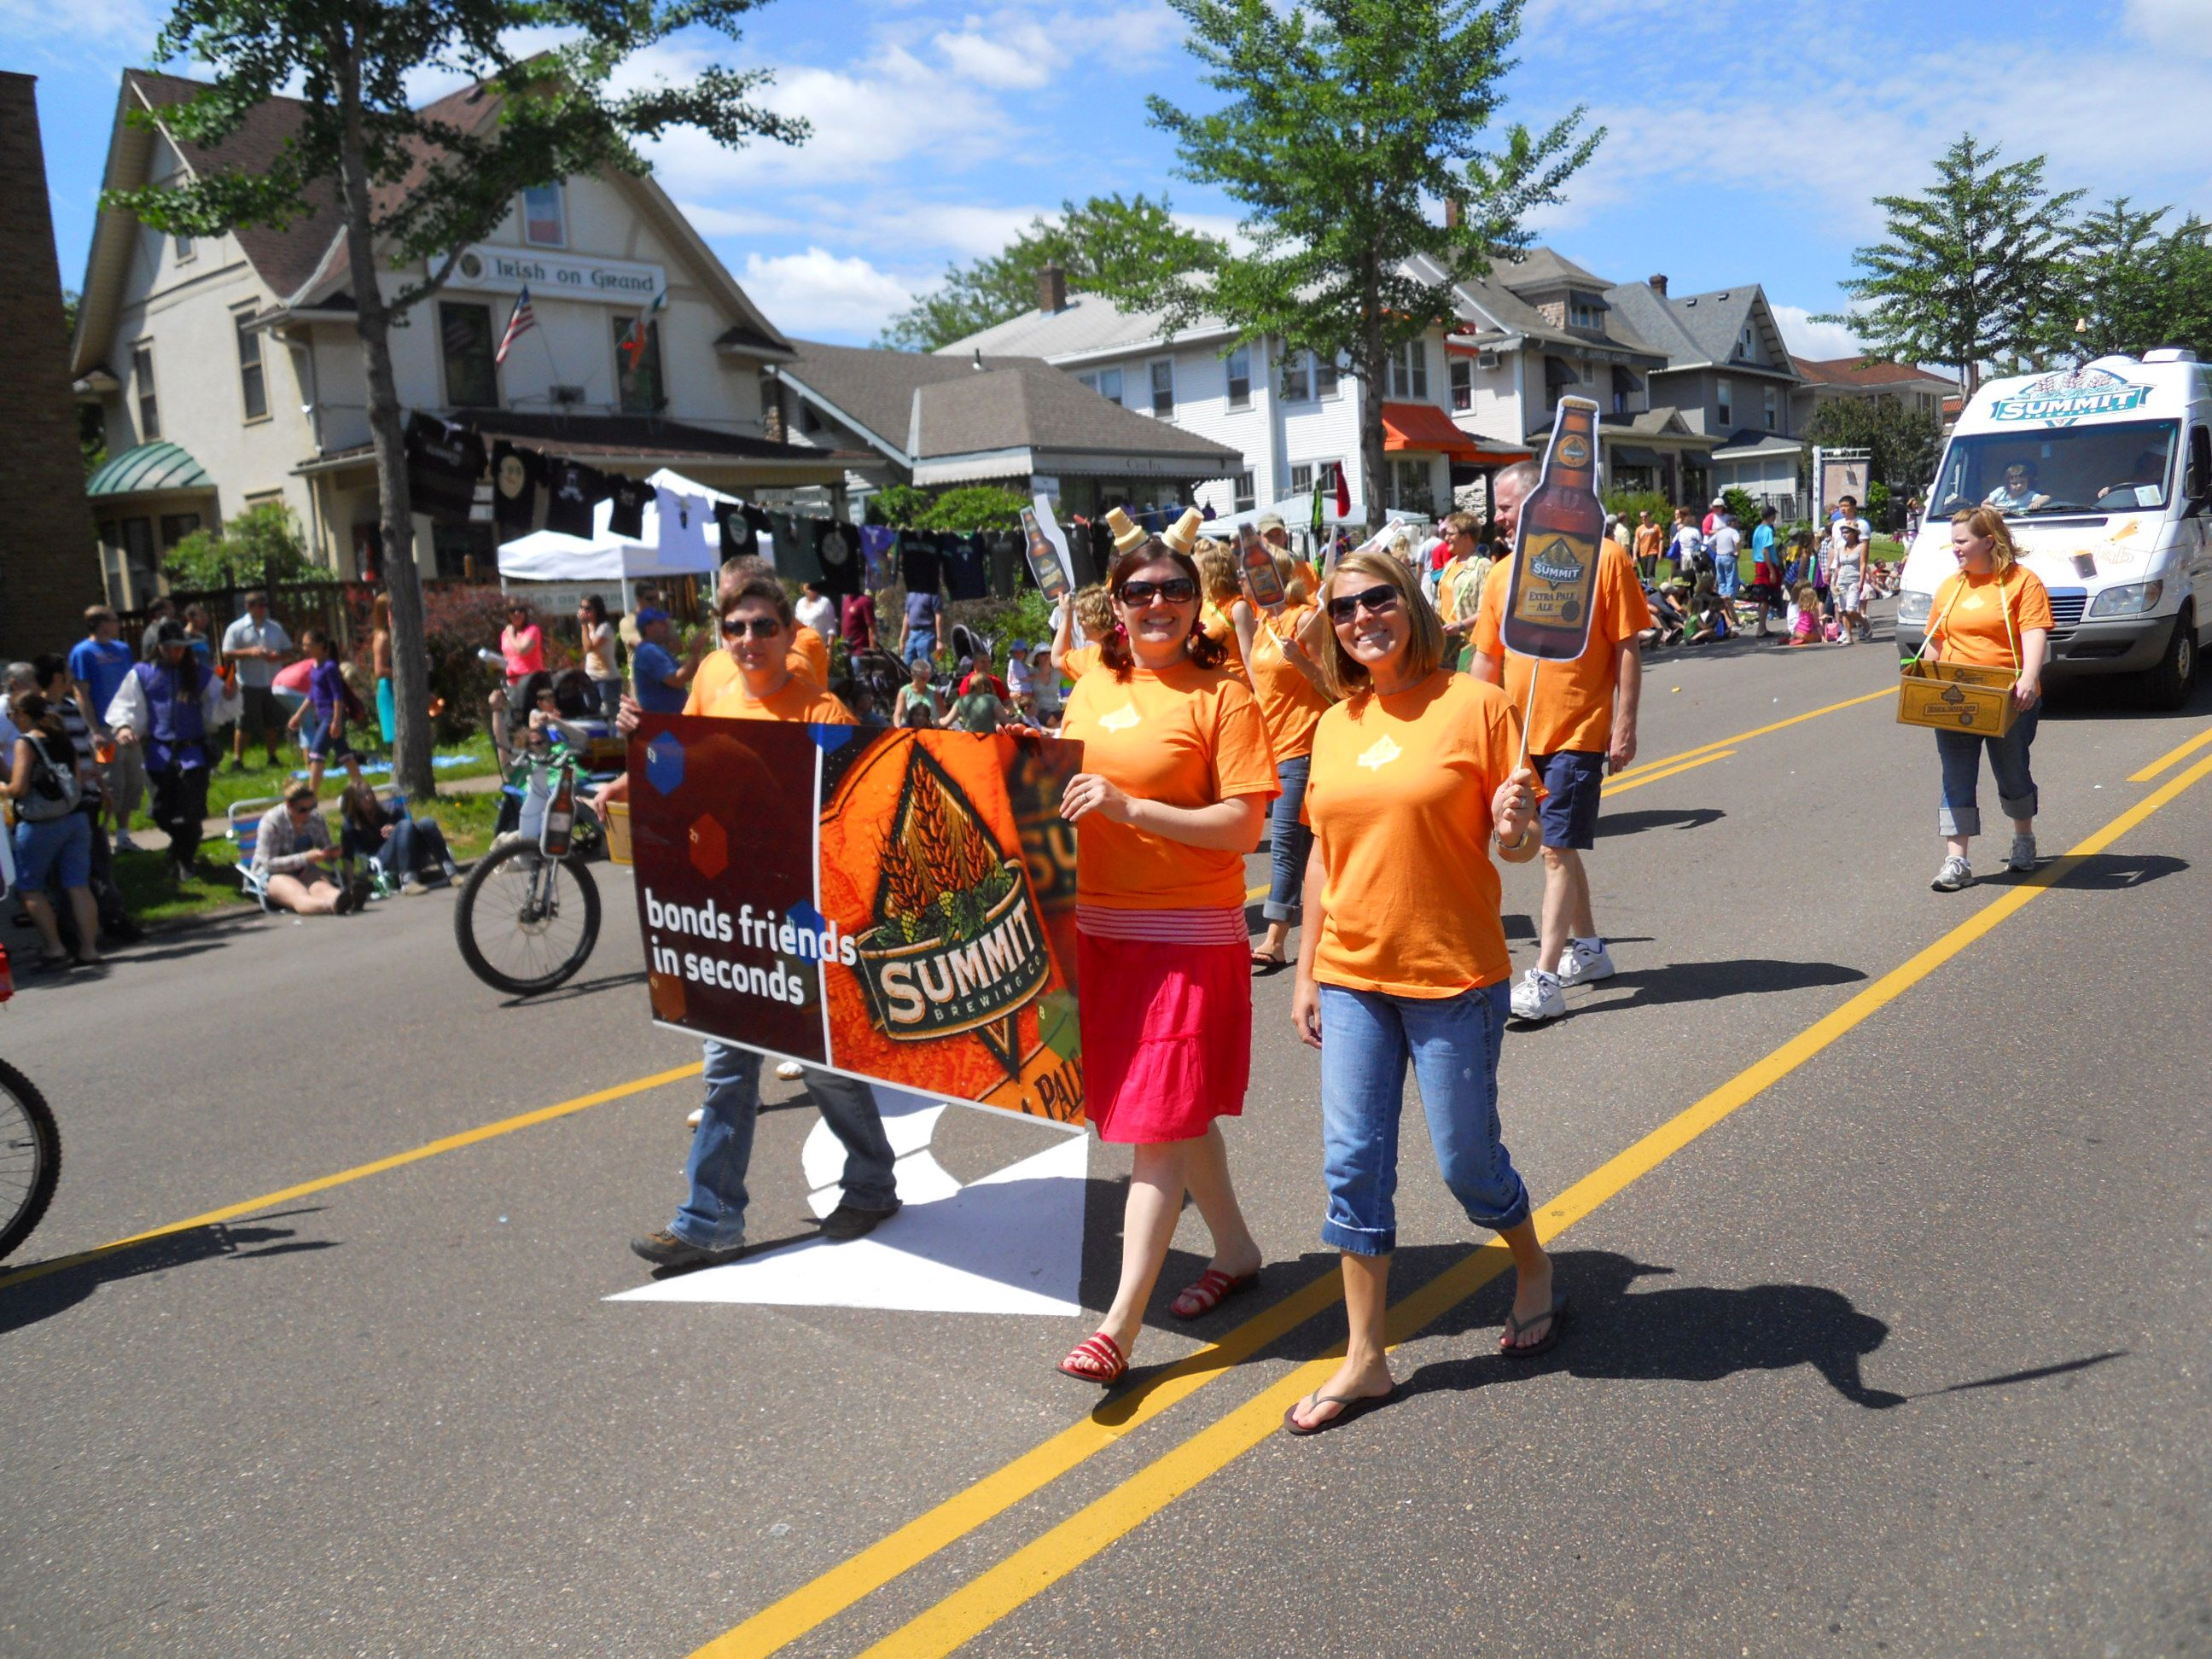 Grand old day parade 2010 with images olds parades